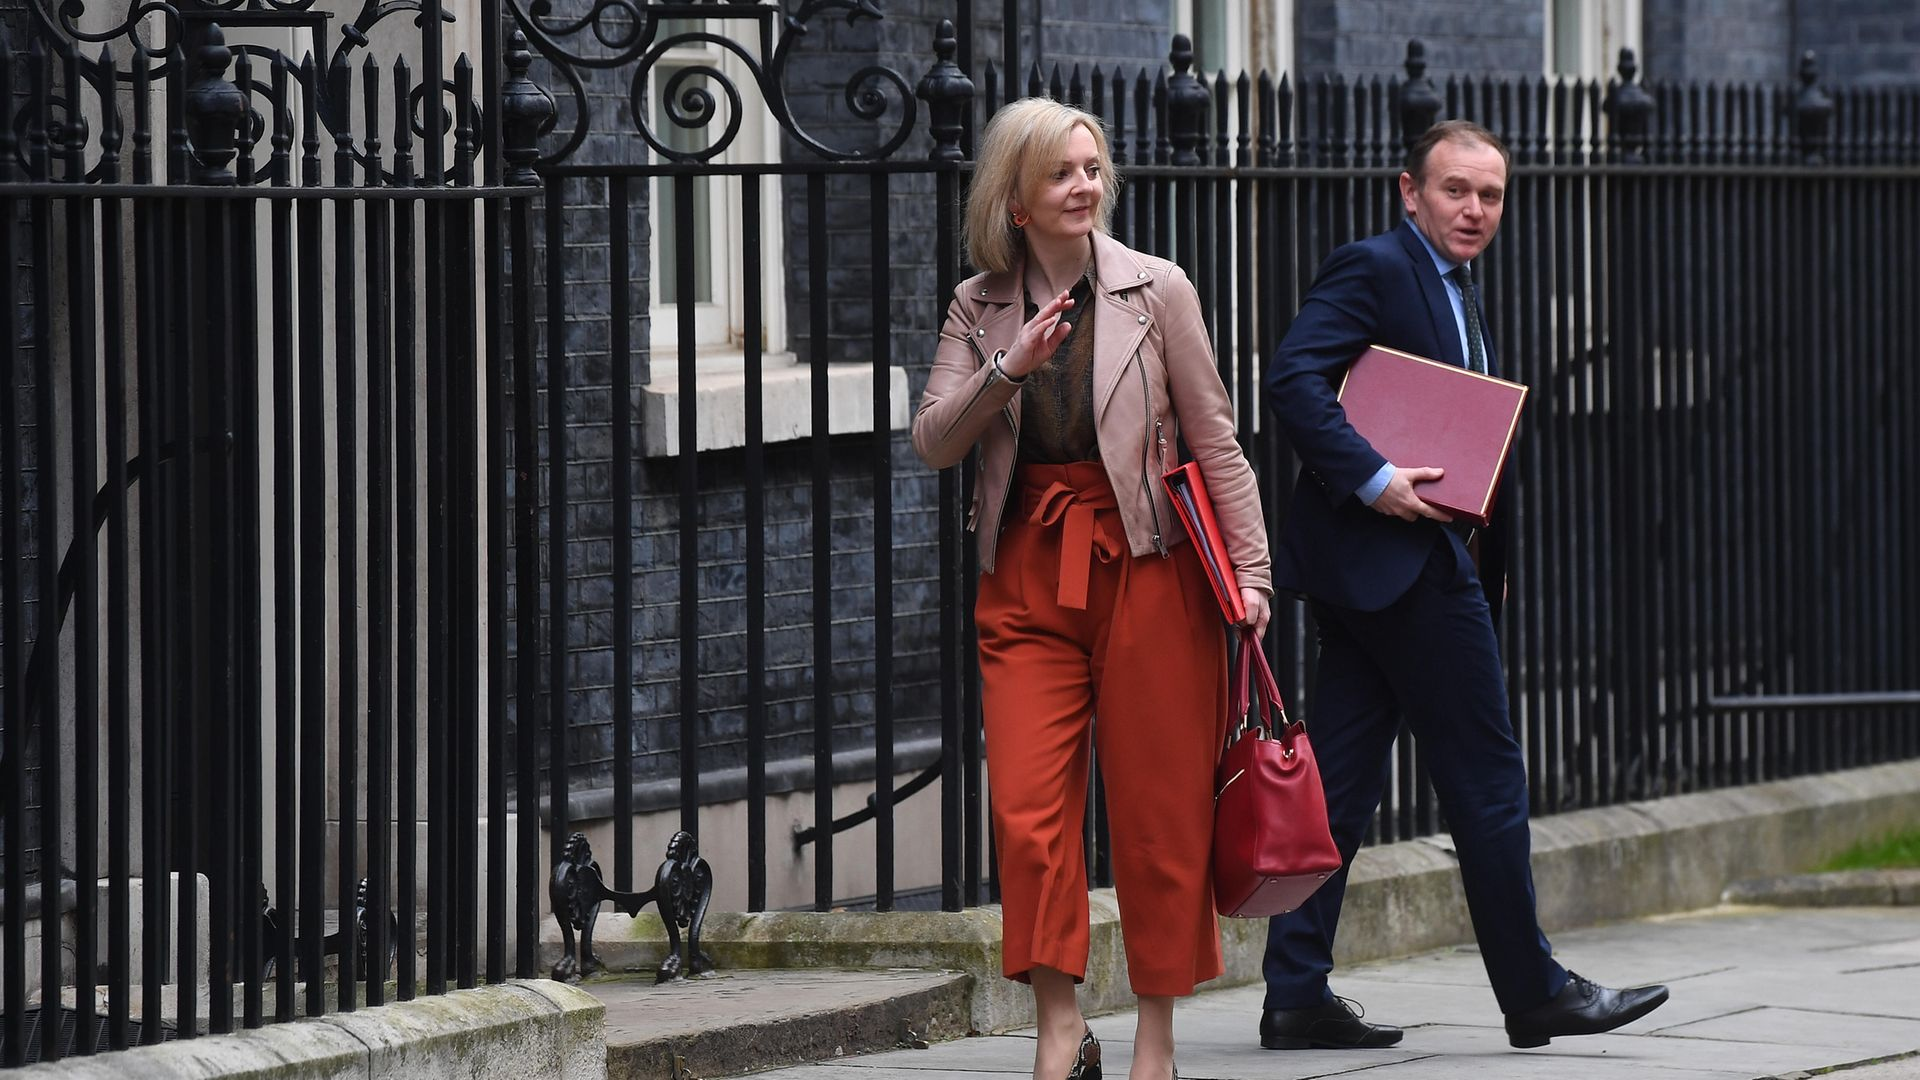 Trade secretary Liz Truss and environment secretary George Eustice in Downing Street - Credit: Victoria Jones/PA Archive/PA Images